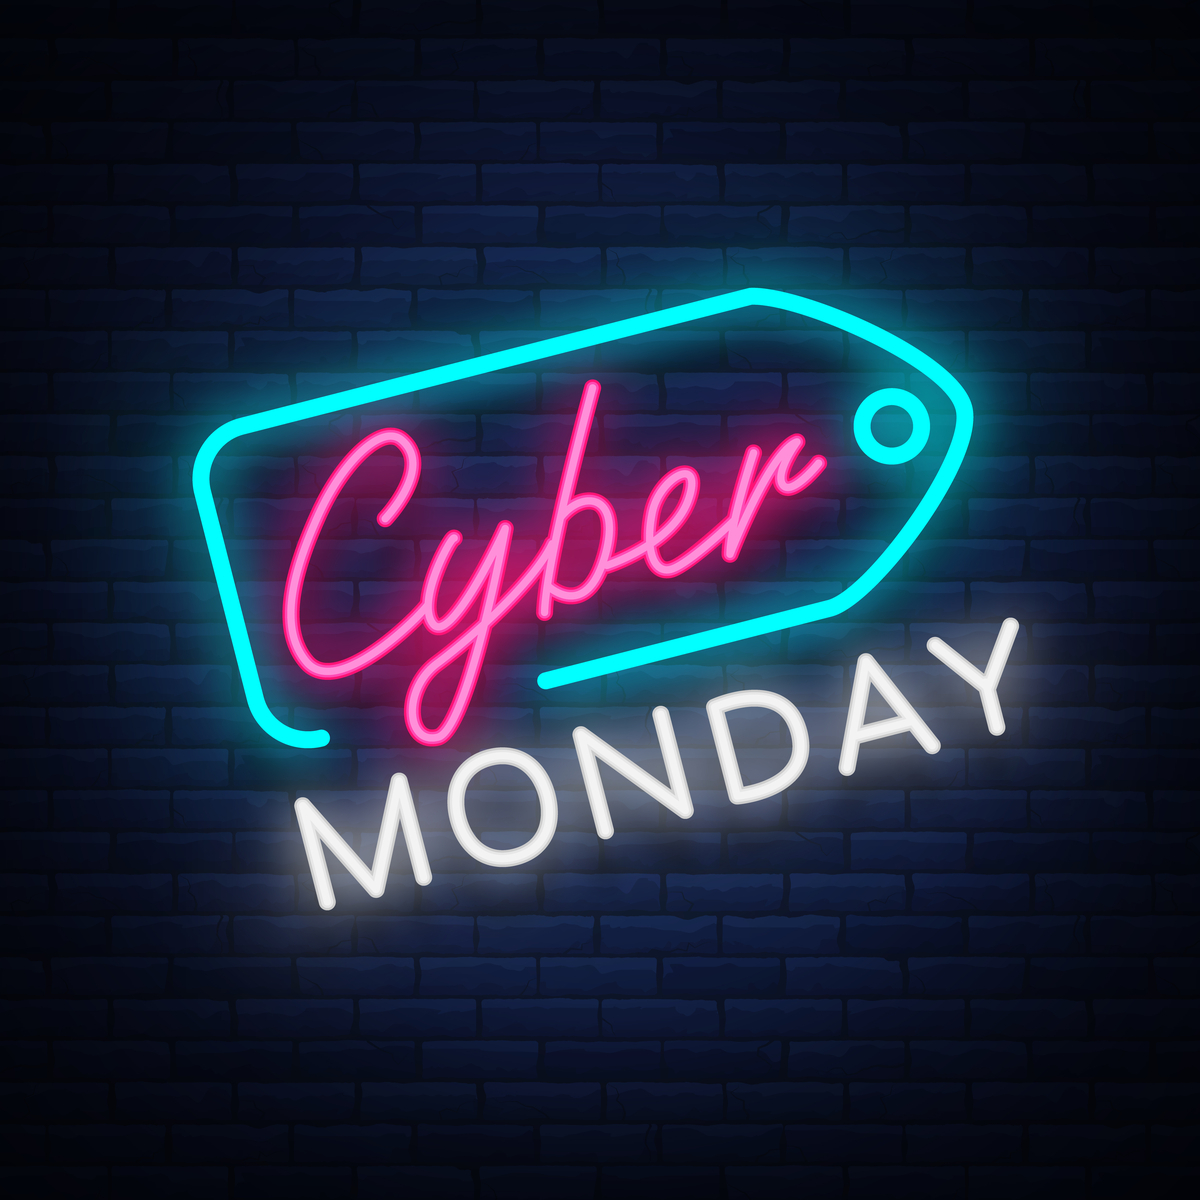 Cyber Monday takes place on the Monday following Thanksgiving. This year, Cyber Monday is December 2.